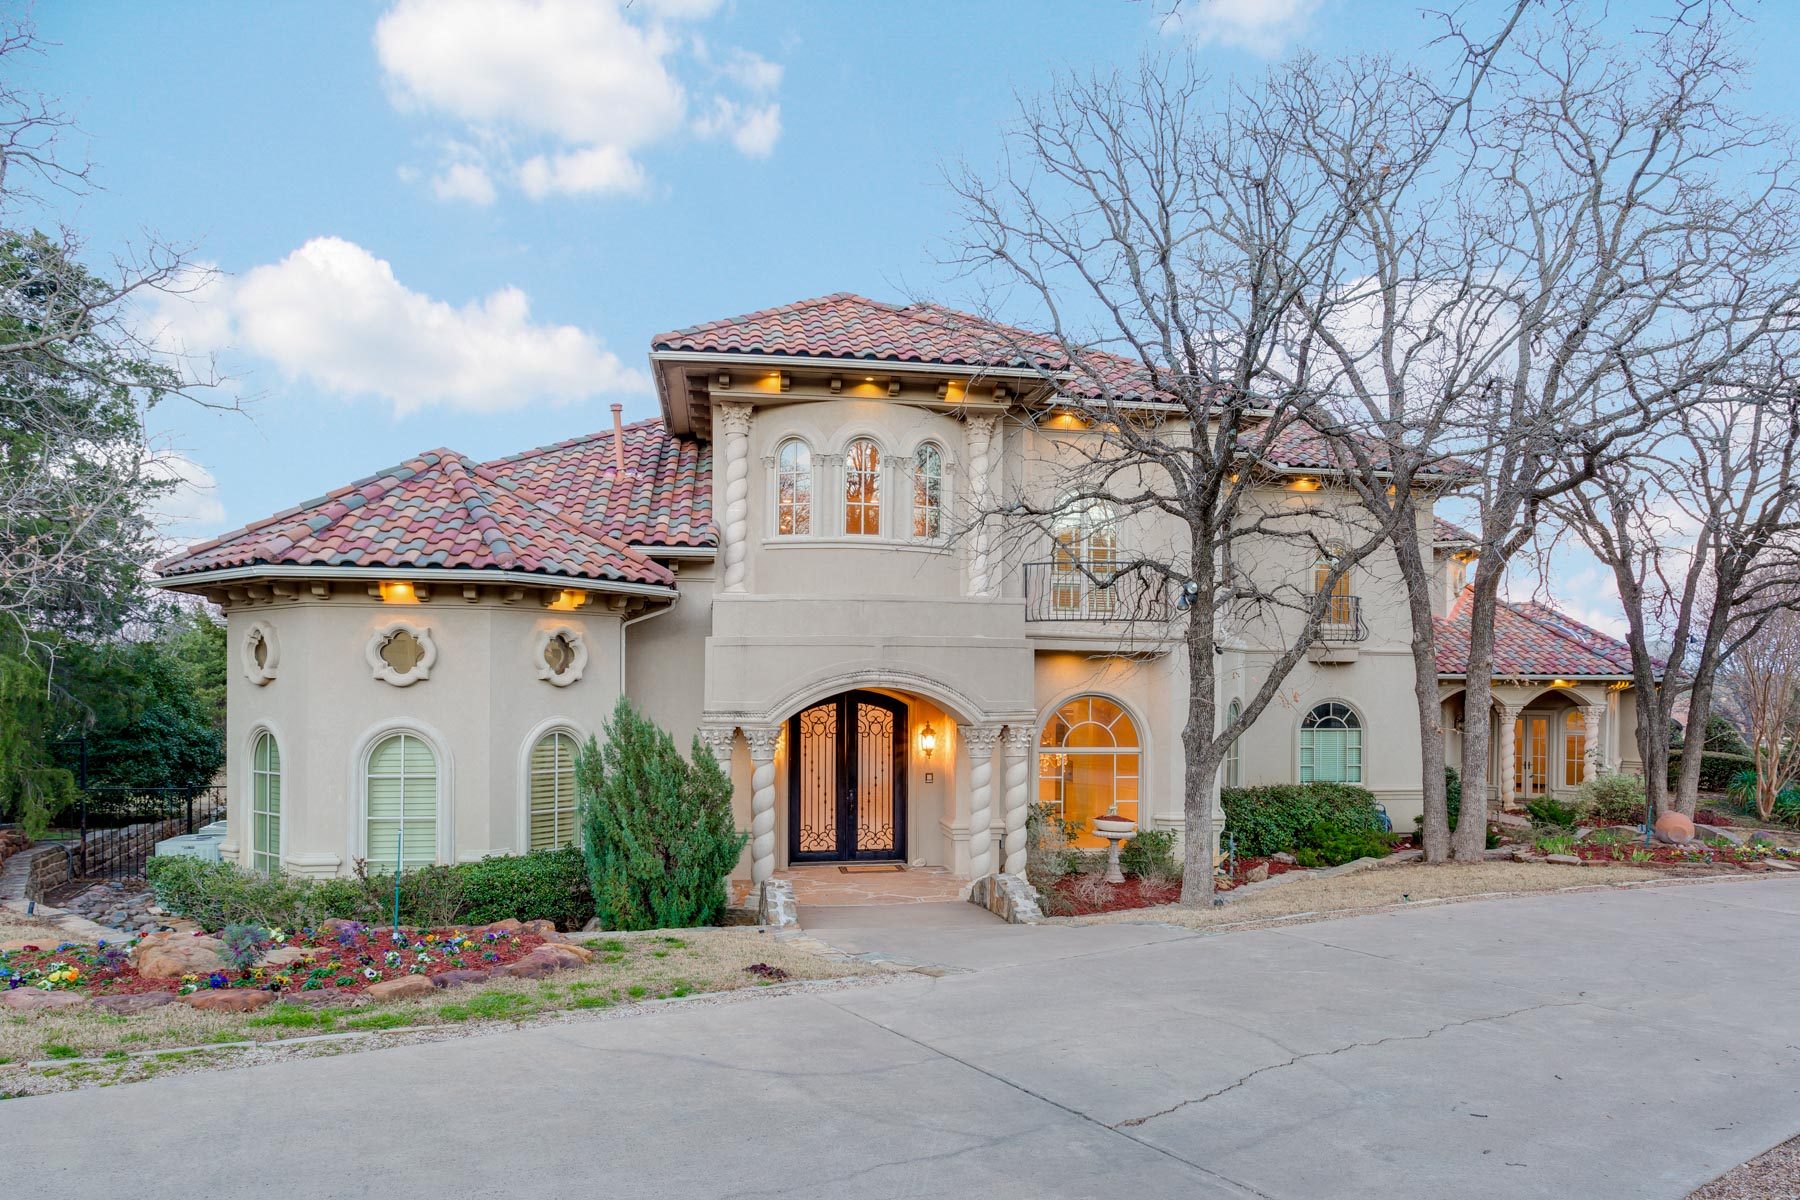 Single Family Home for Sale at Tuscany of Westlake 3060 Dove Rd Westlake, Texas 76262 United States